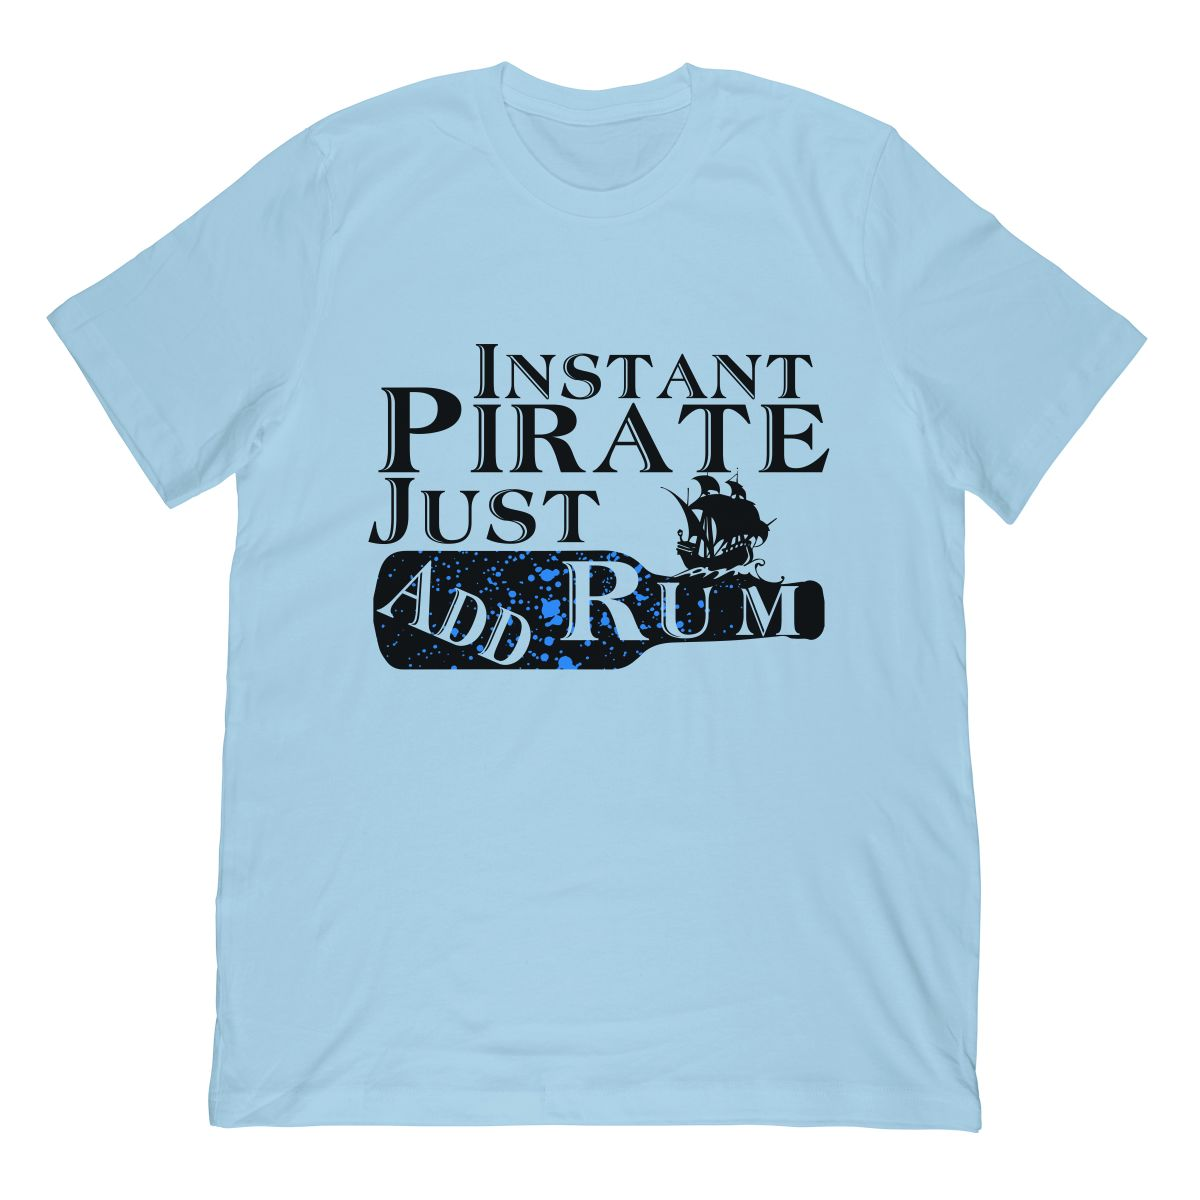 Instant Pirate Just Add Rum Funny Cruise Ship T-Shirt